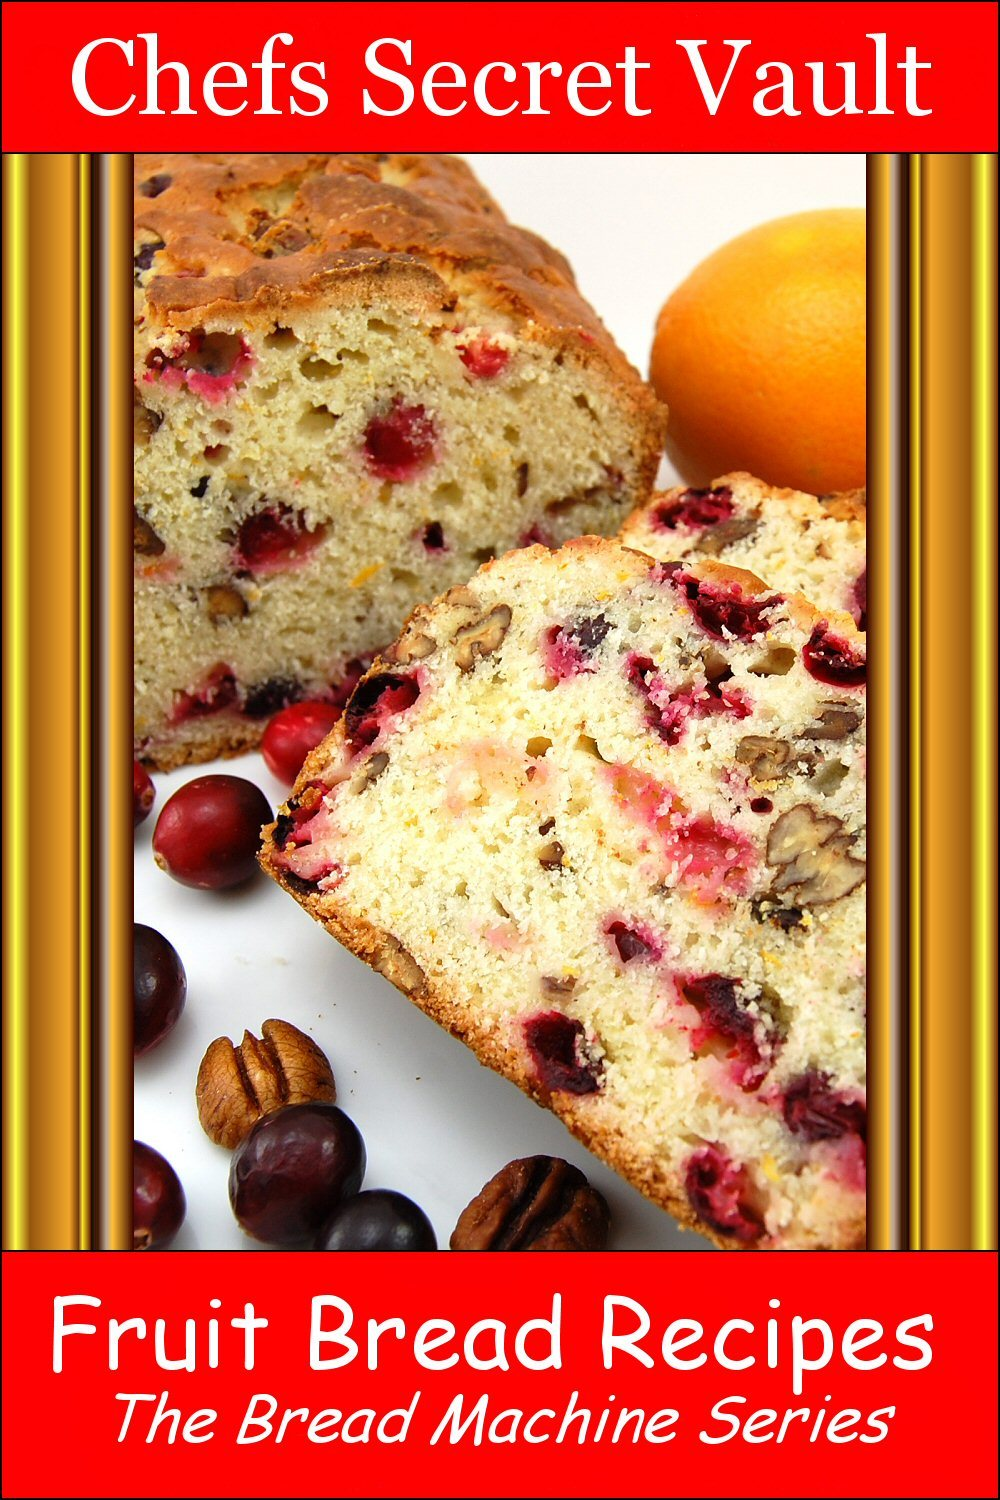 Fruit Bread Recipes: The Bread Machine Series By: Chefs Secret Vault